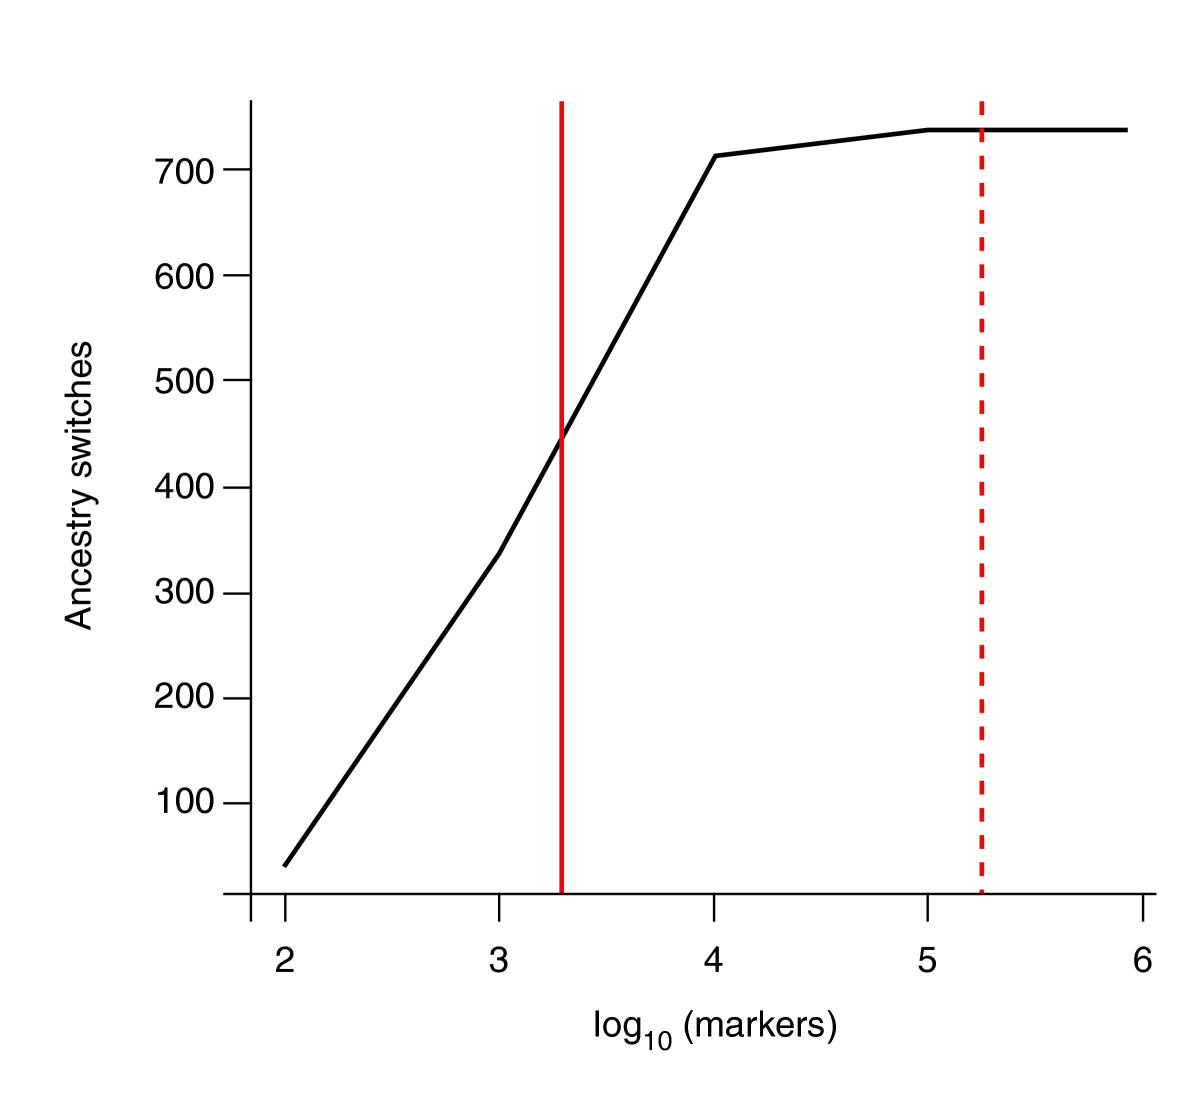 https://static-content.springer.com/image/art%3A10.1186%2Fgb-2011-12-5-223/MediaObjects/13059_2011_Article_2523_Fig3_HTML.jpg